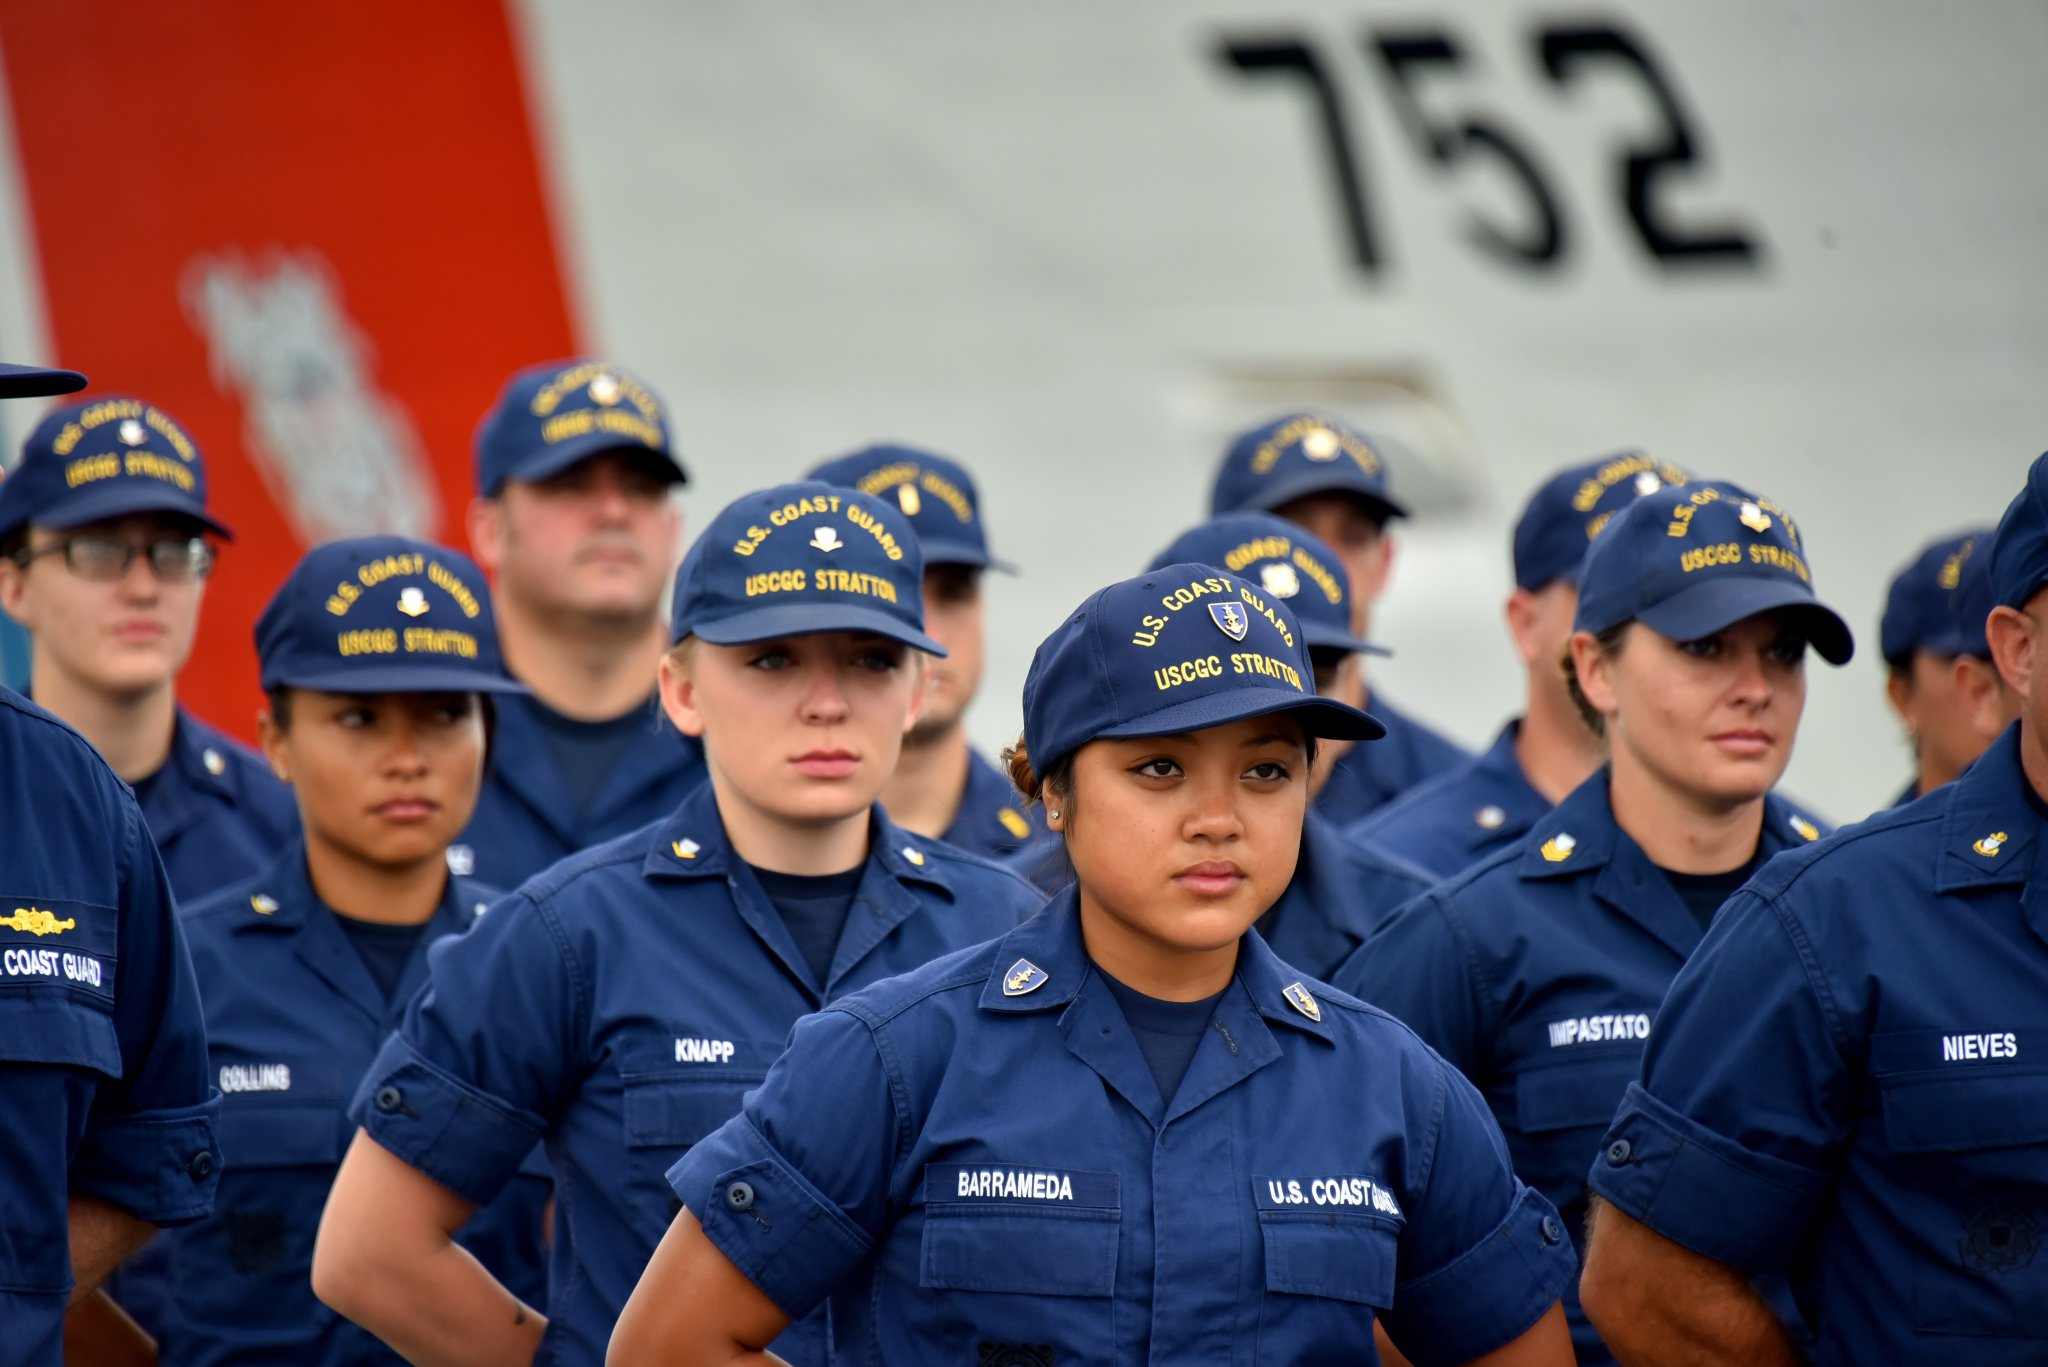 Relief program for Coast Guard members off to slow start